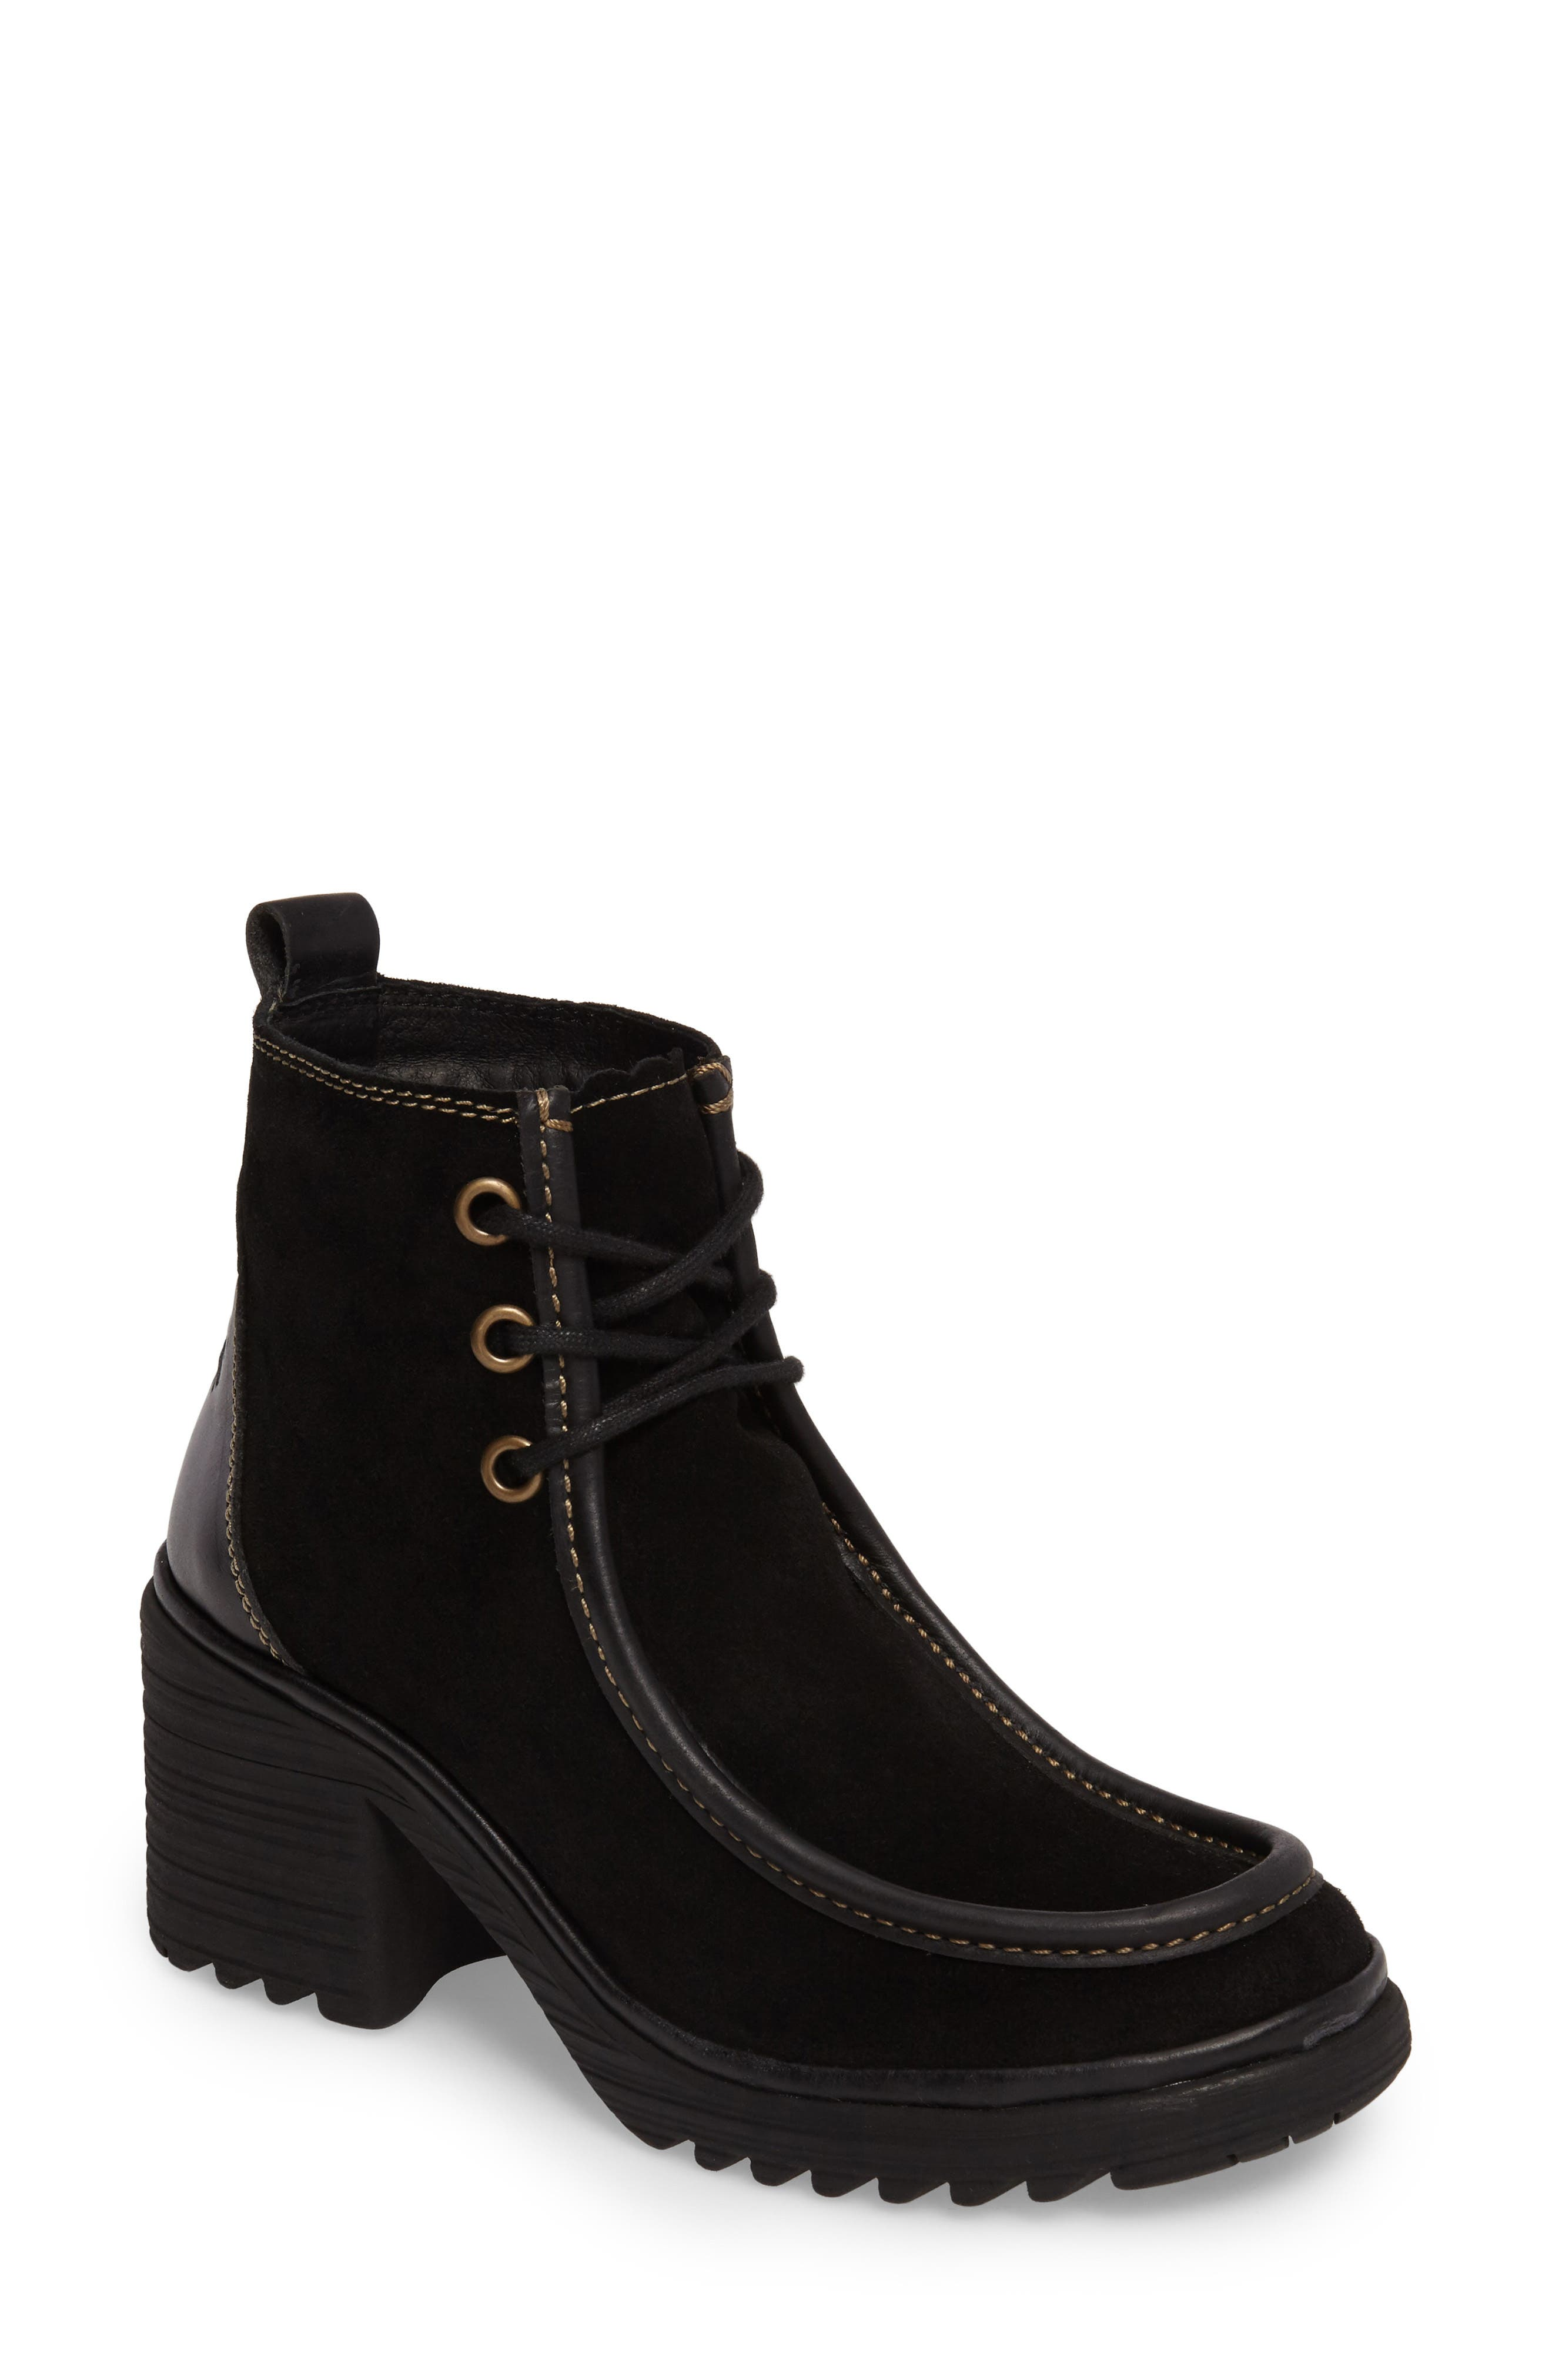 Wins Boot,                             Main thumbnail 1, color,                             Black Oil Suede